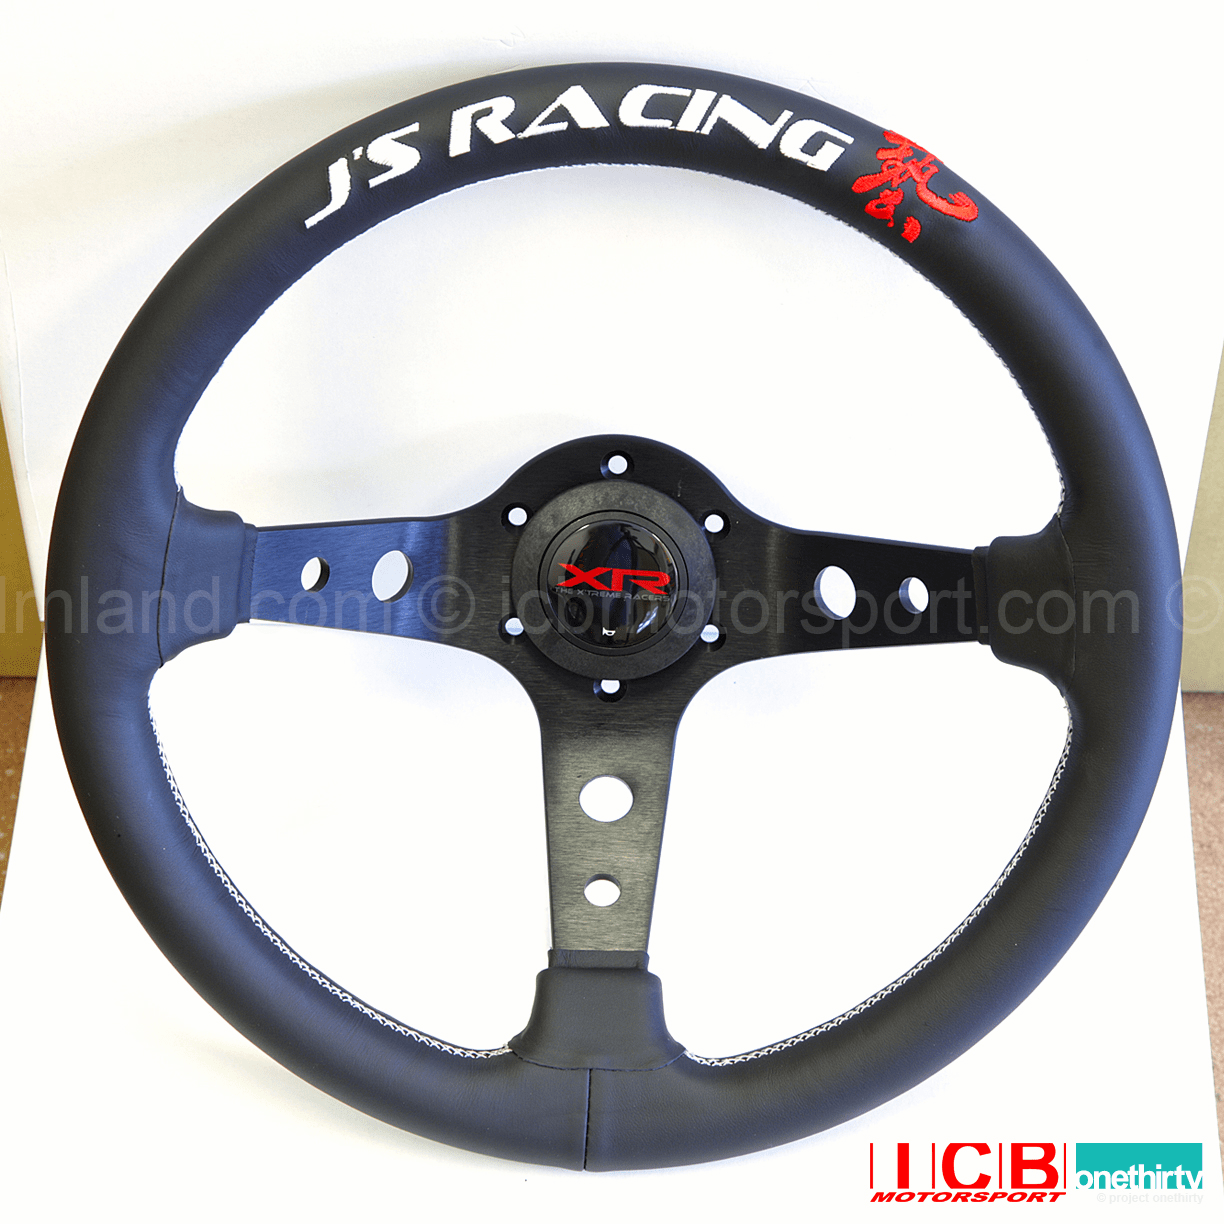 J'S RACING XR Steering Type-D Leather US version